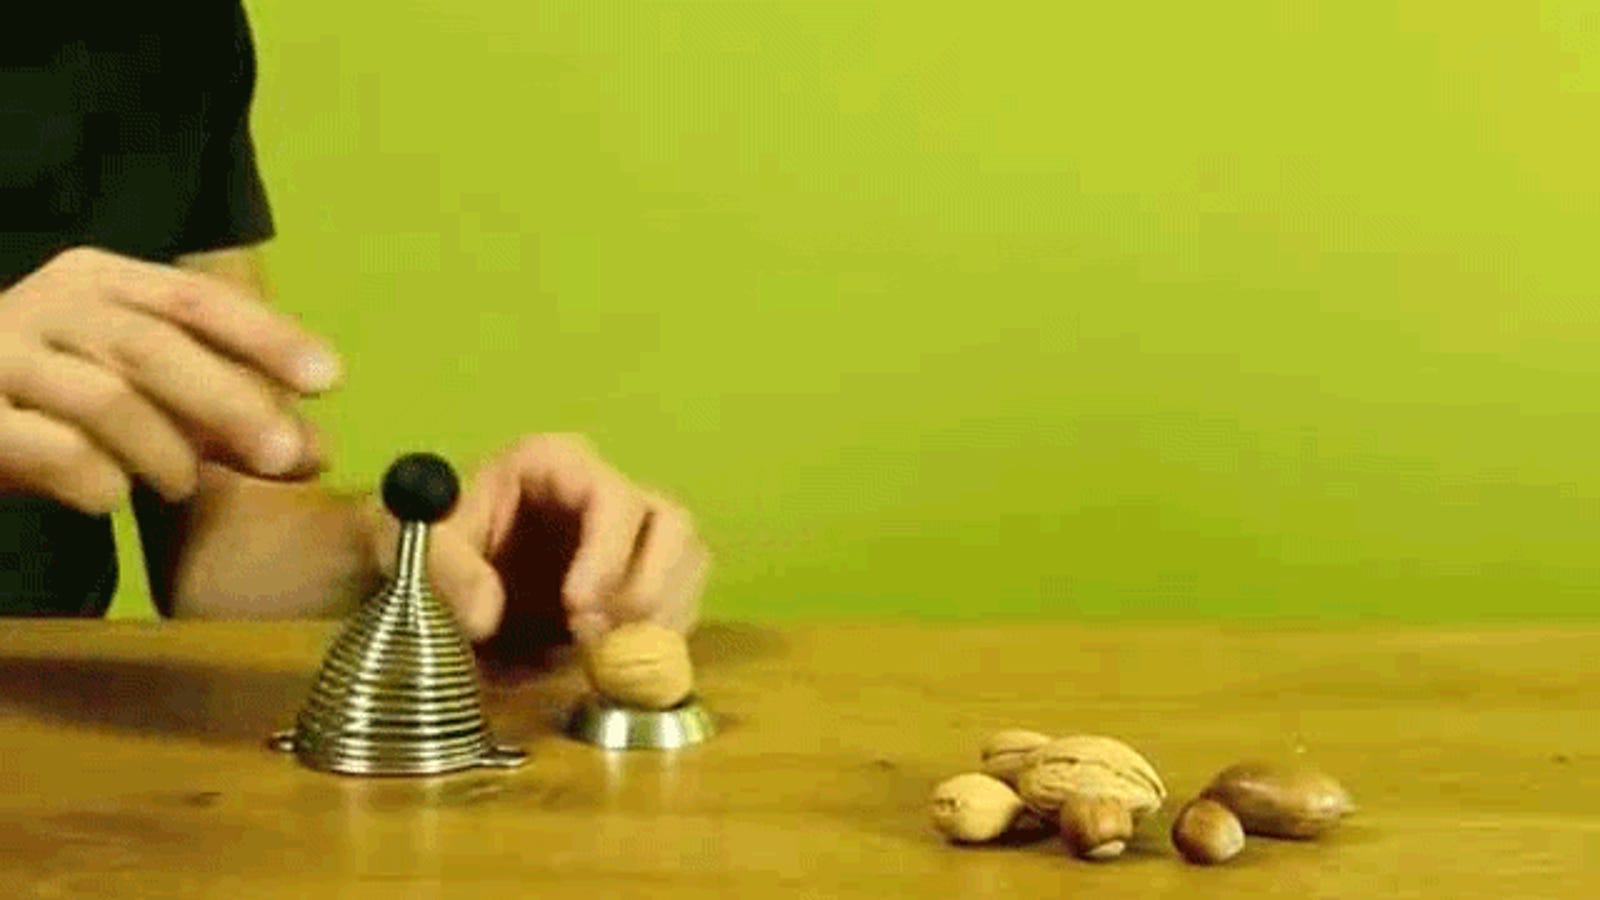 I Need This Genius Spring Smasher To Crack My Nuts